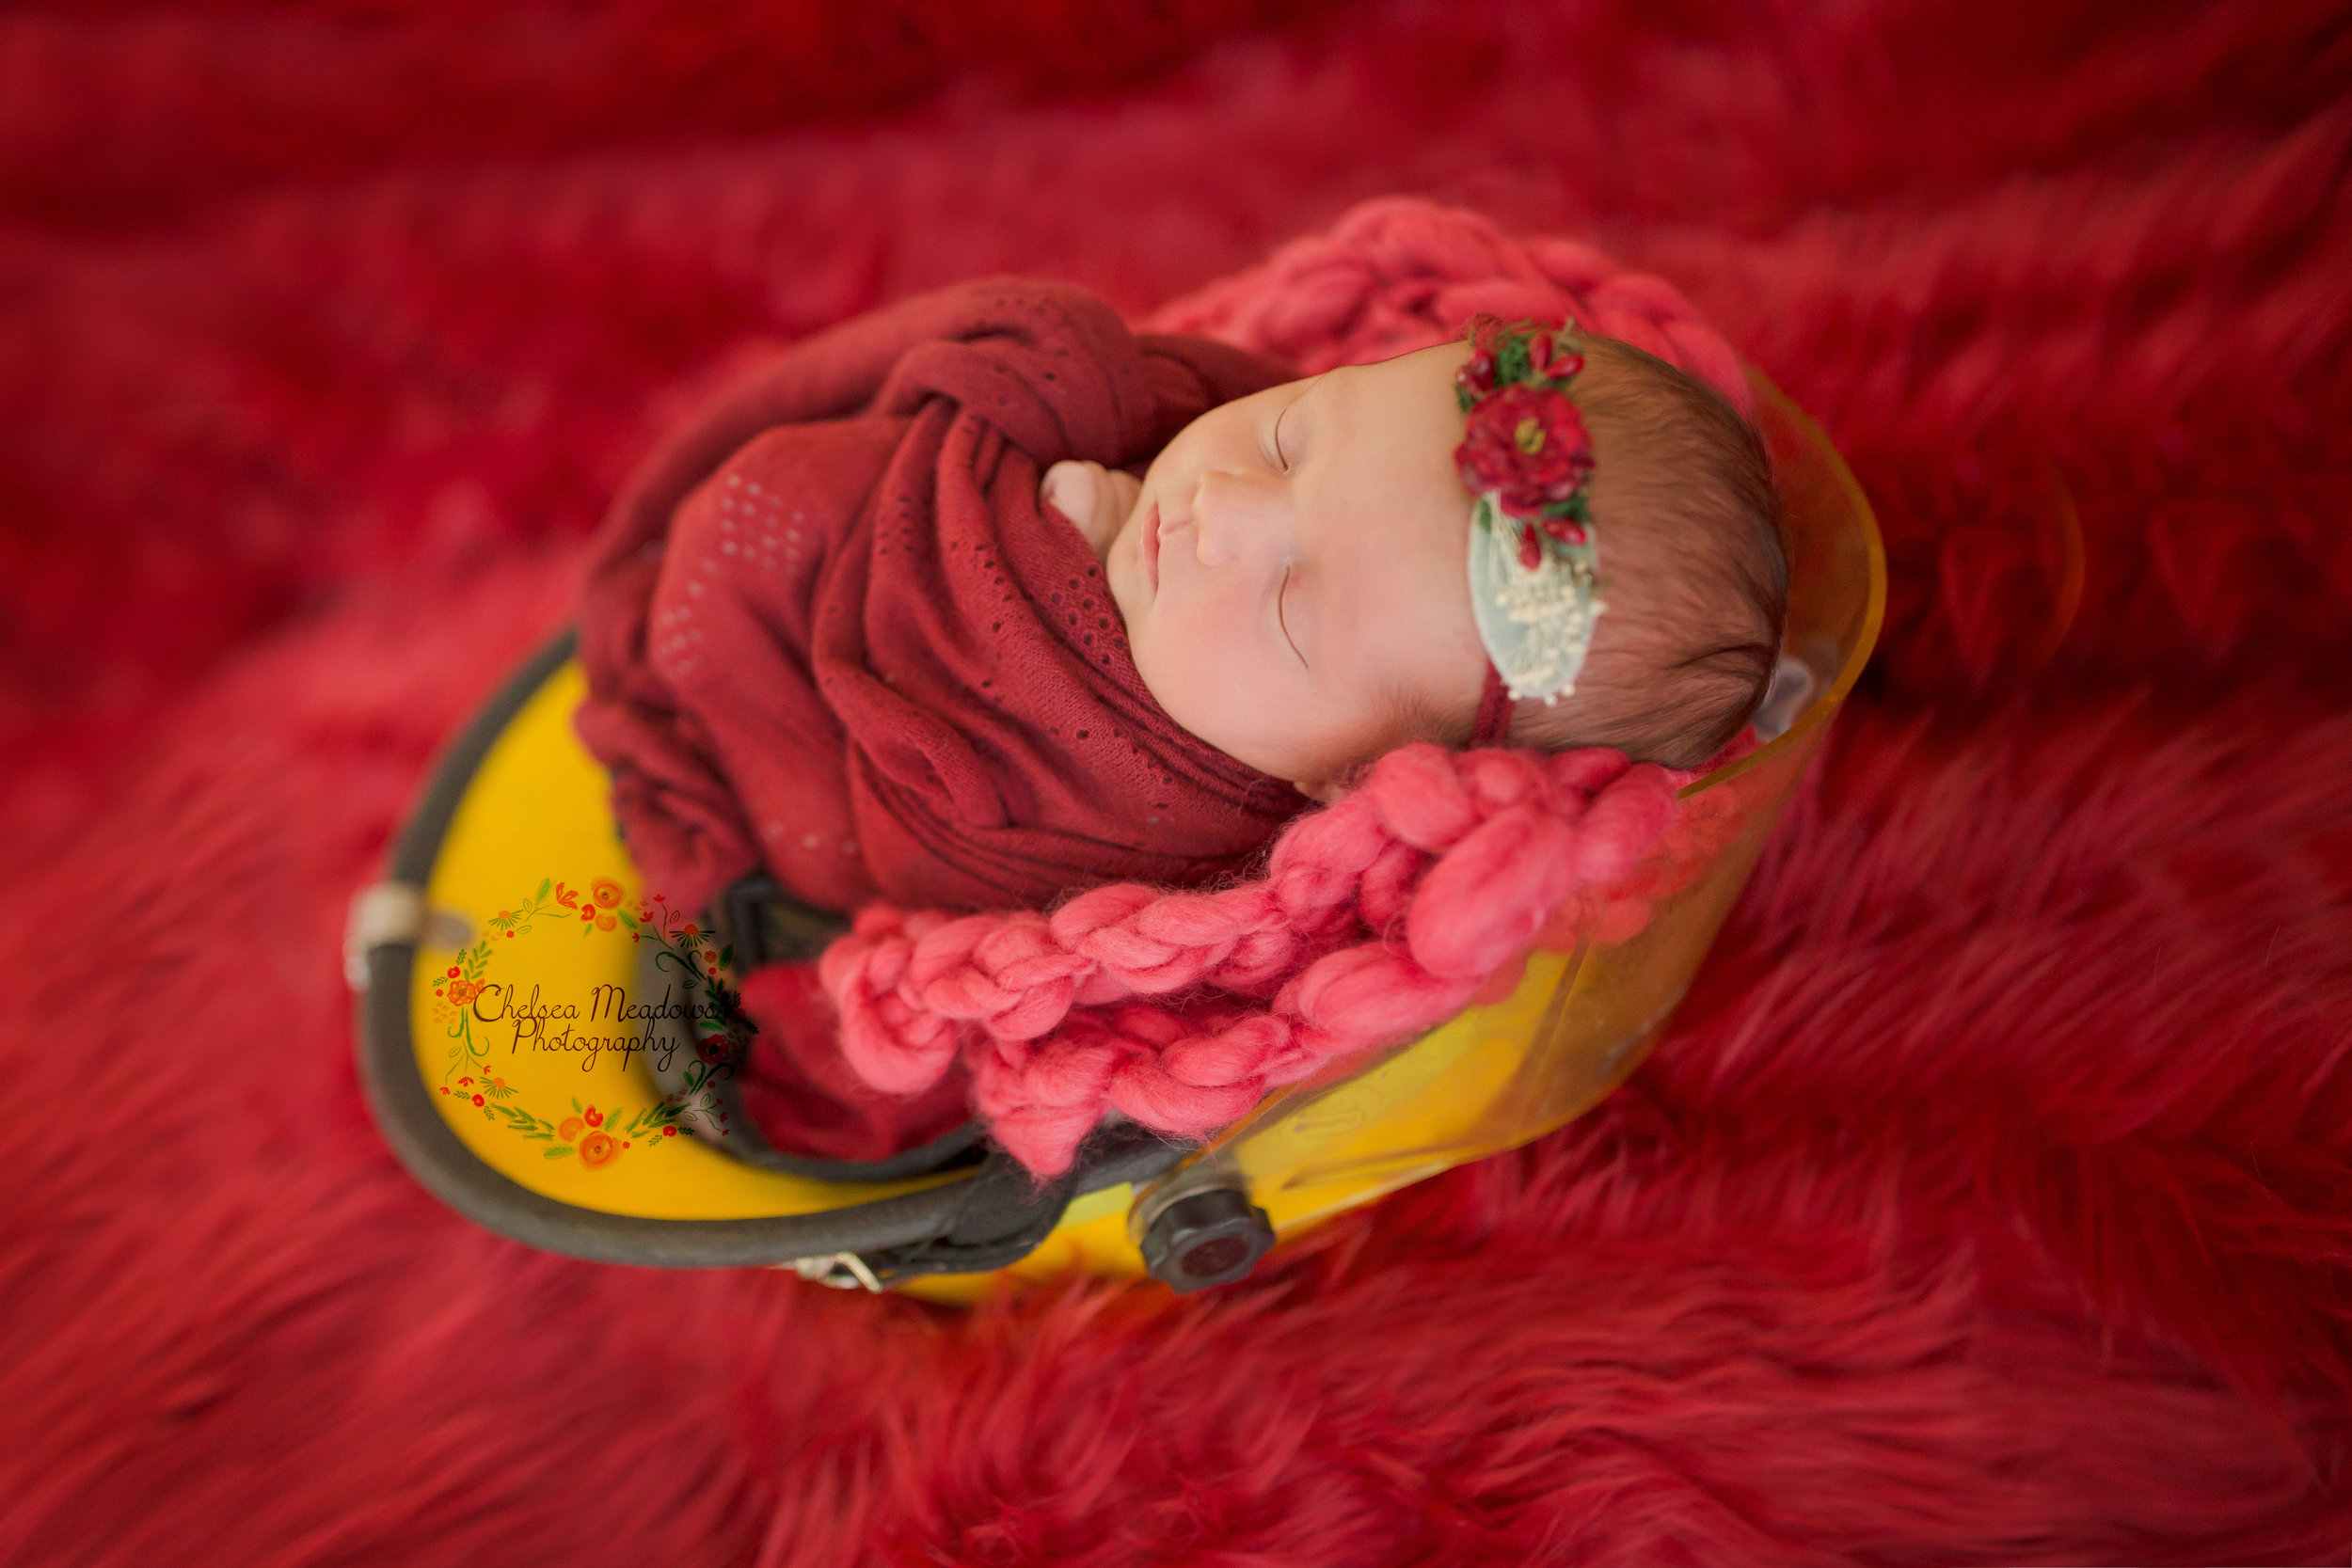 Marley Newborn Photos - Nashville Newborn Photographer - Chelsea Meadows Photography (14)_edited-1.jpg